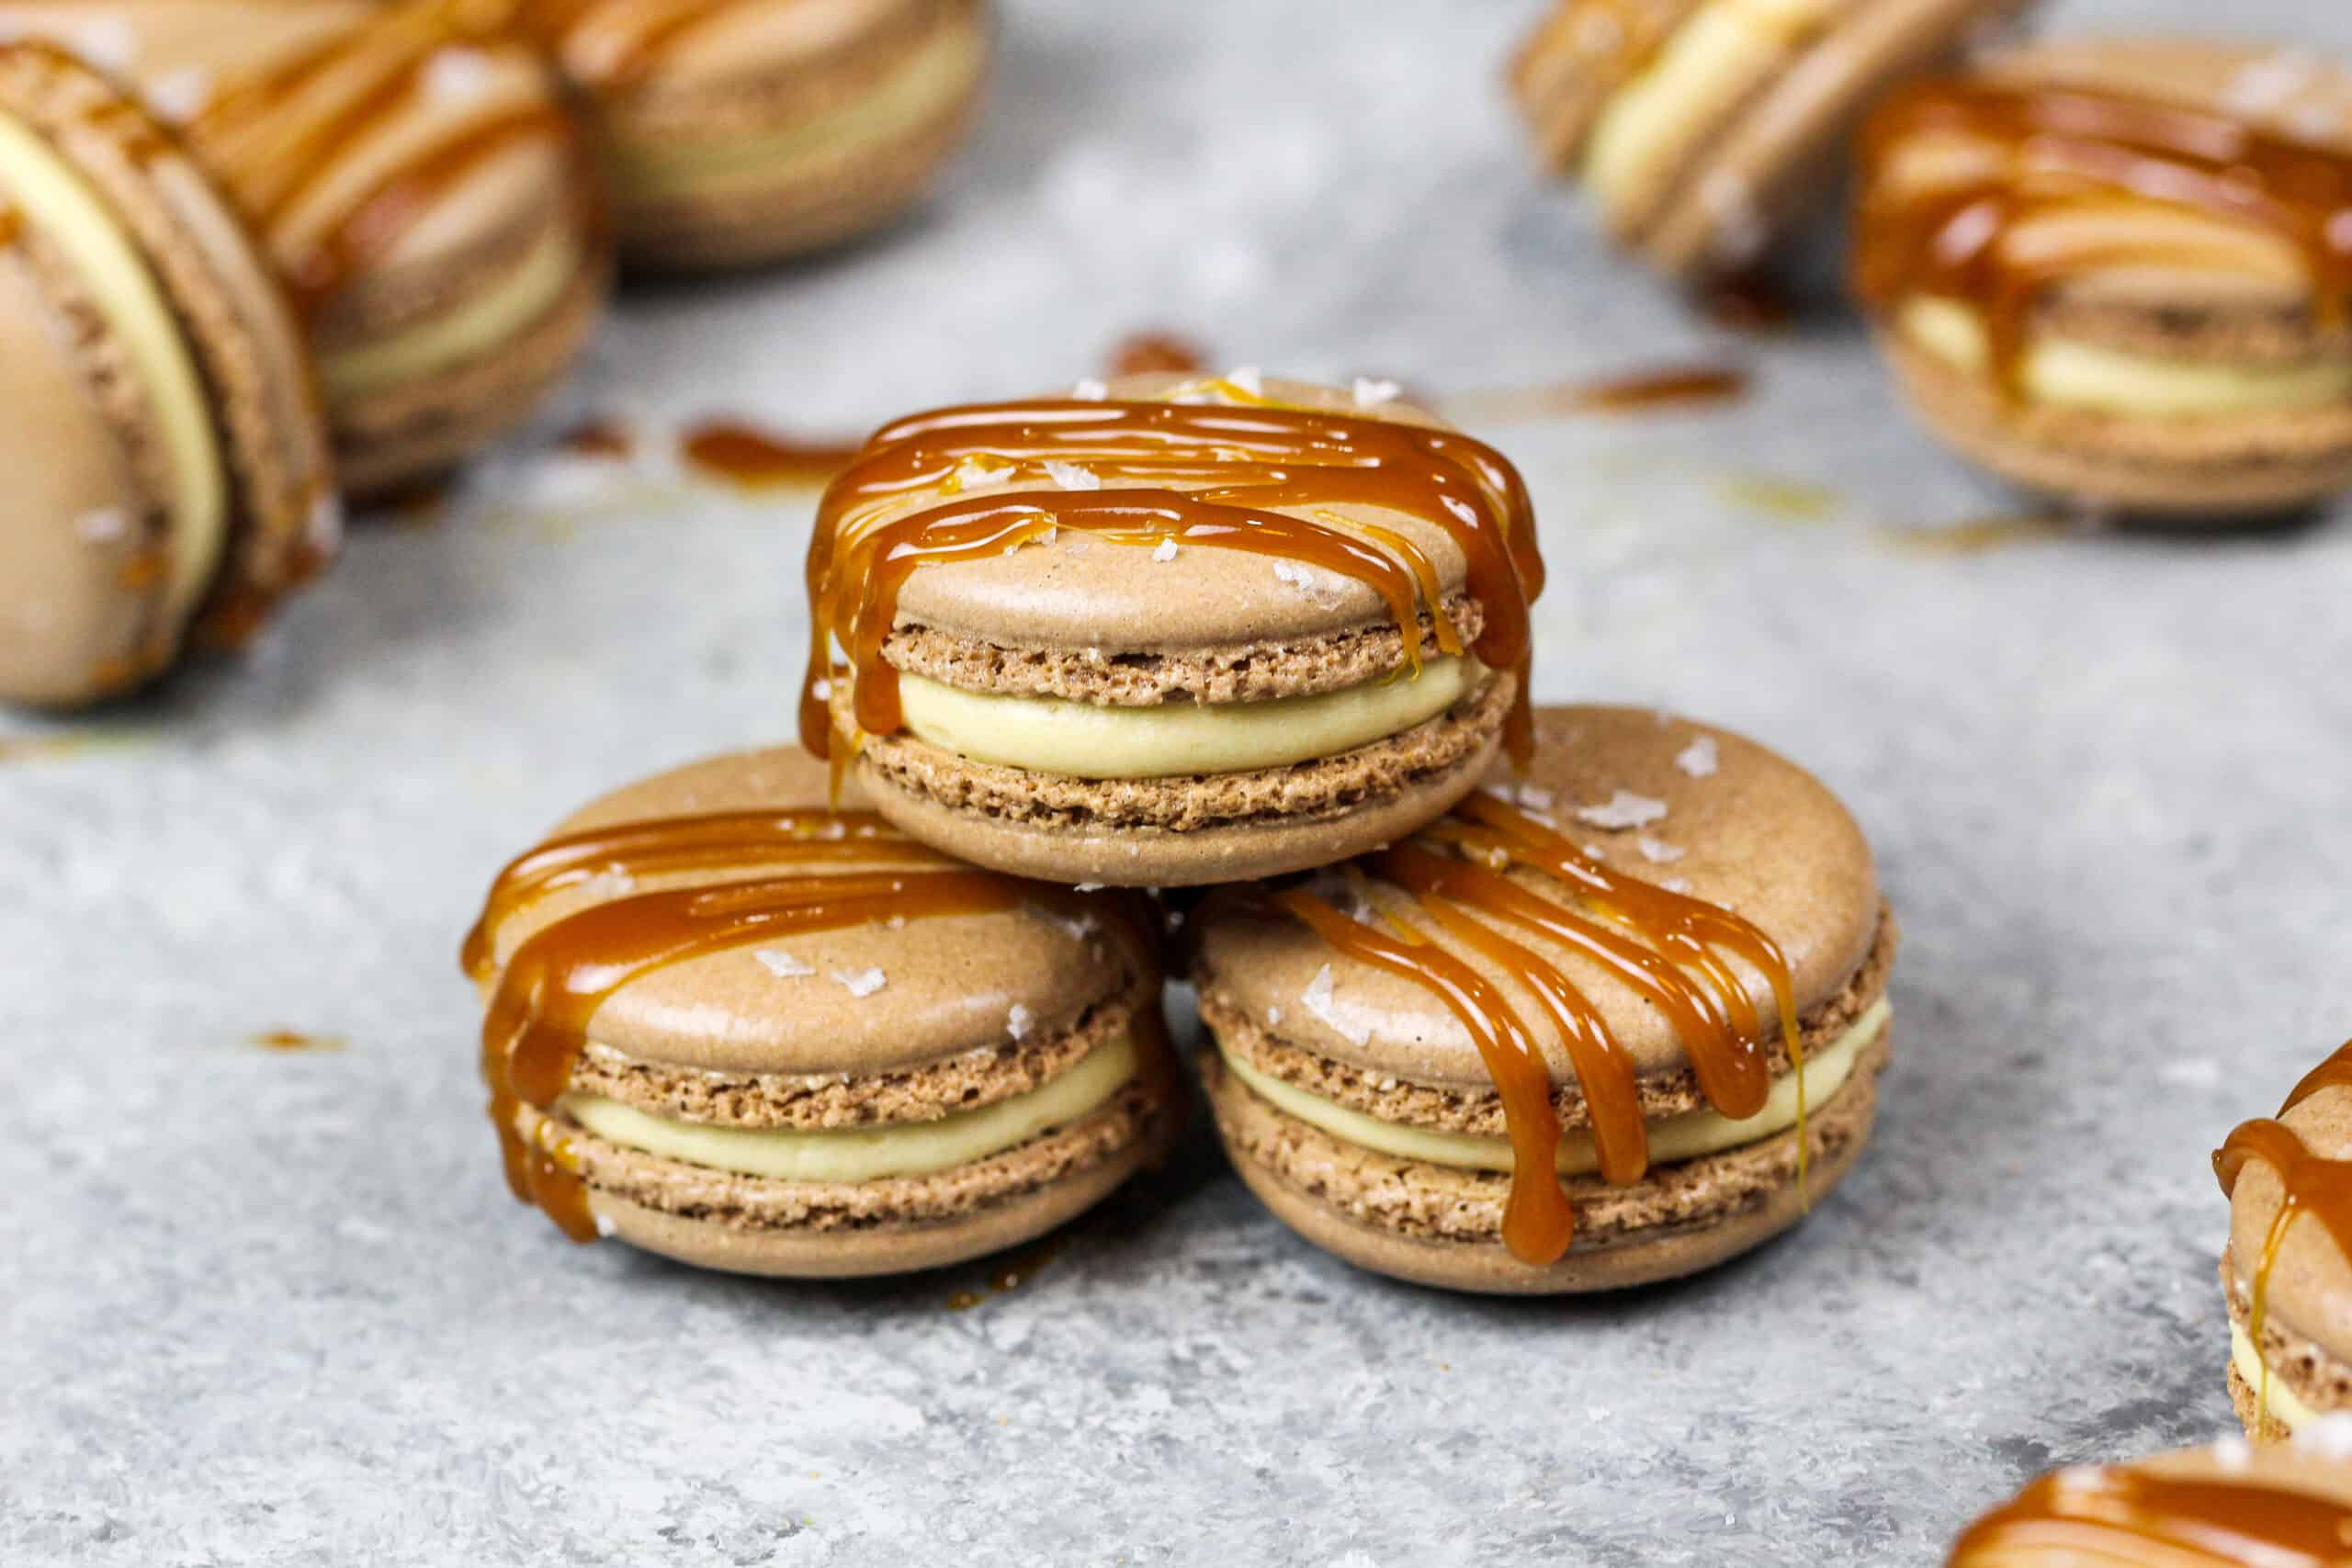 image of salted caramel macarons drizzled with caramel sauce and flakey sea salt